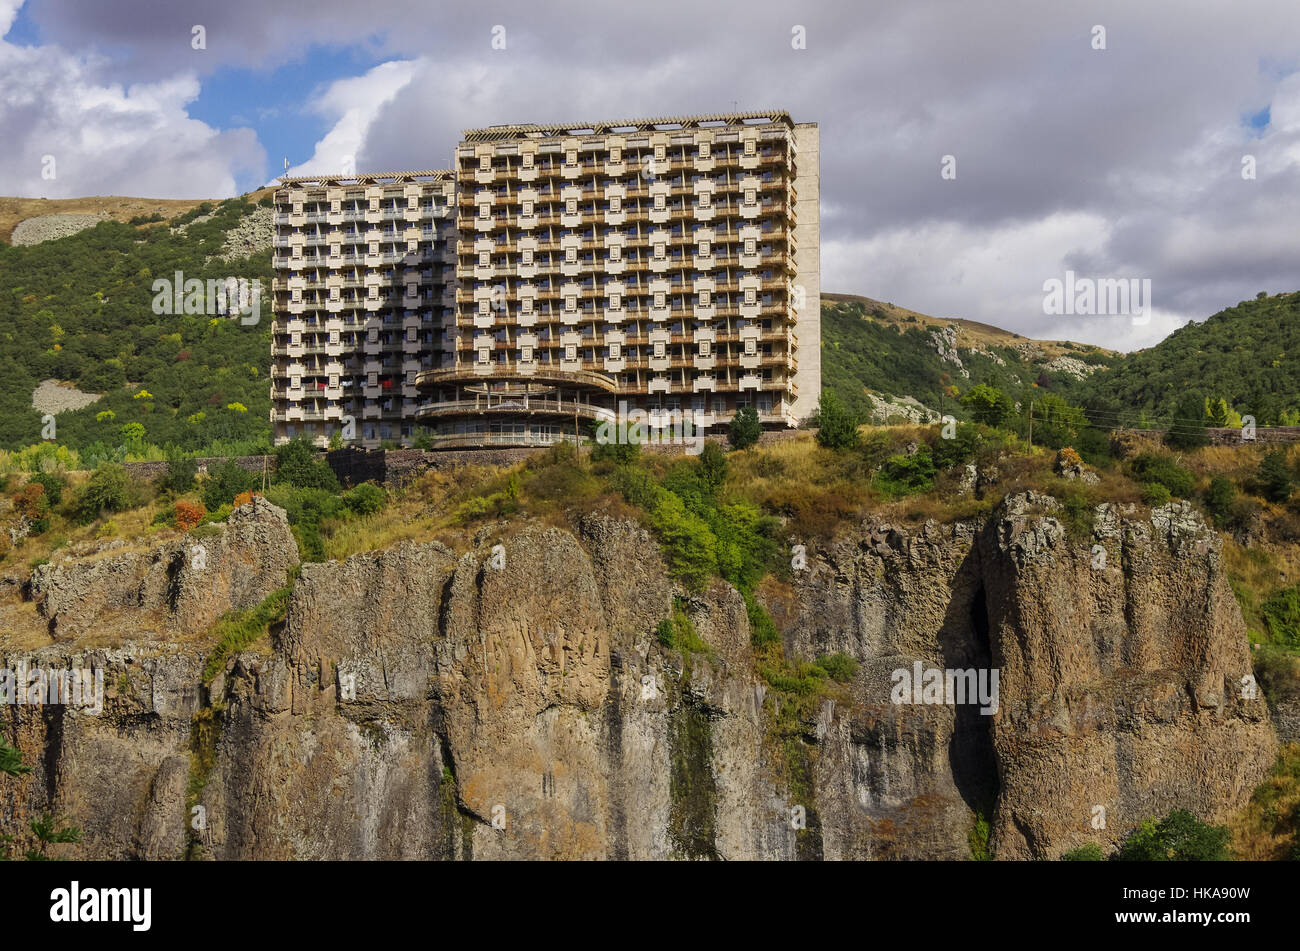 Abandoned soviet hotel on the cliff of Arpa river canyon on spa